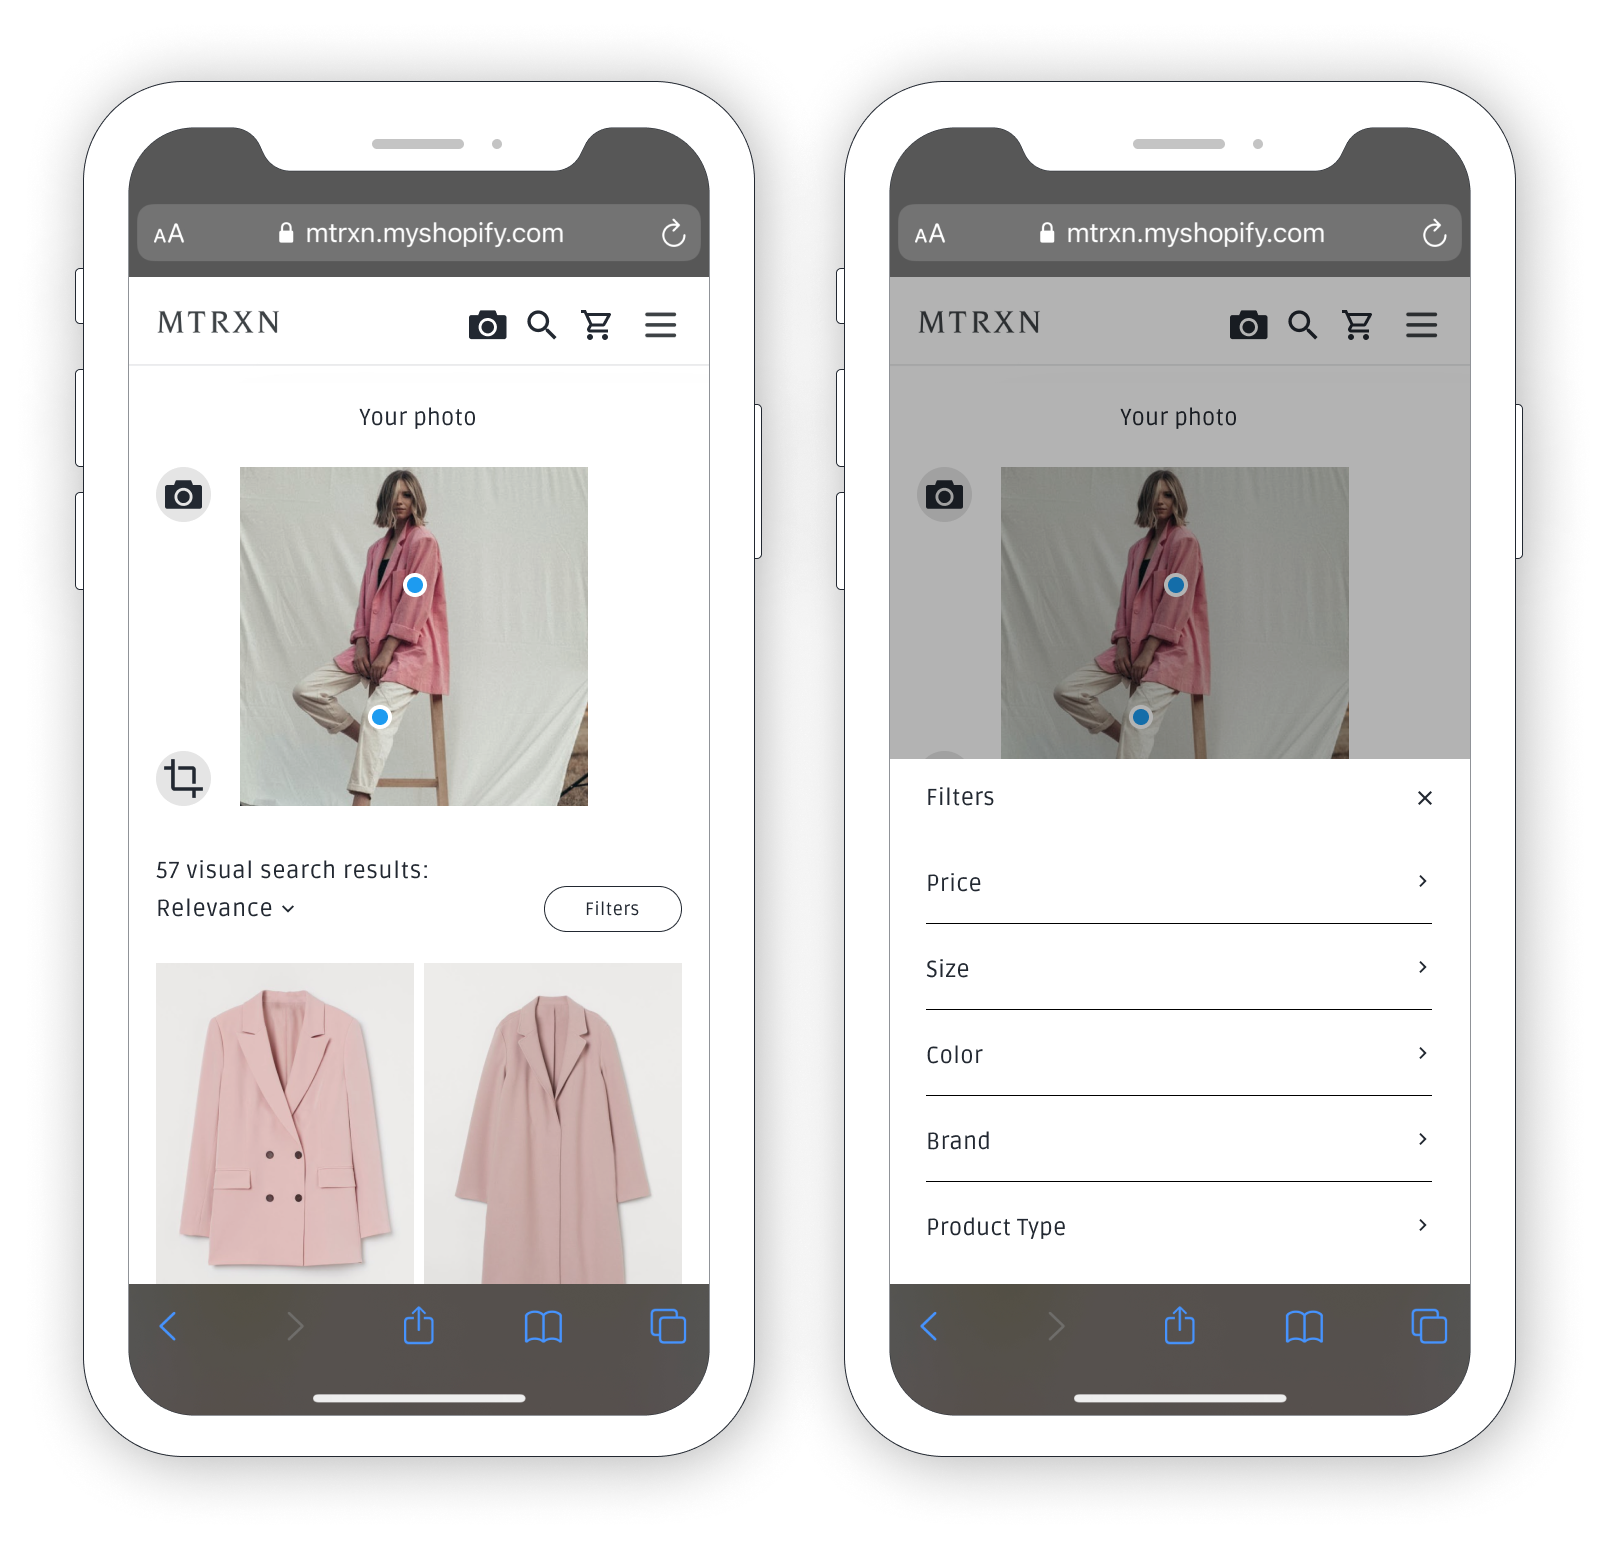 Mobile friendly visual search results. Shows an uploaded image of a woman in a pink blazer and white pants. Search results show first two results which consists of two pink jackets. There are also filter options where the user can filter by price, size, colour, brand and product type.